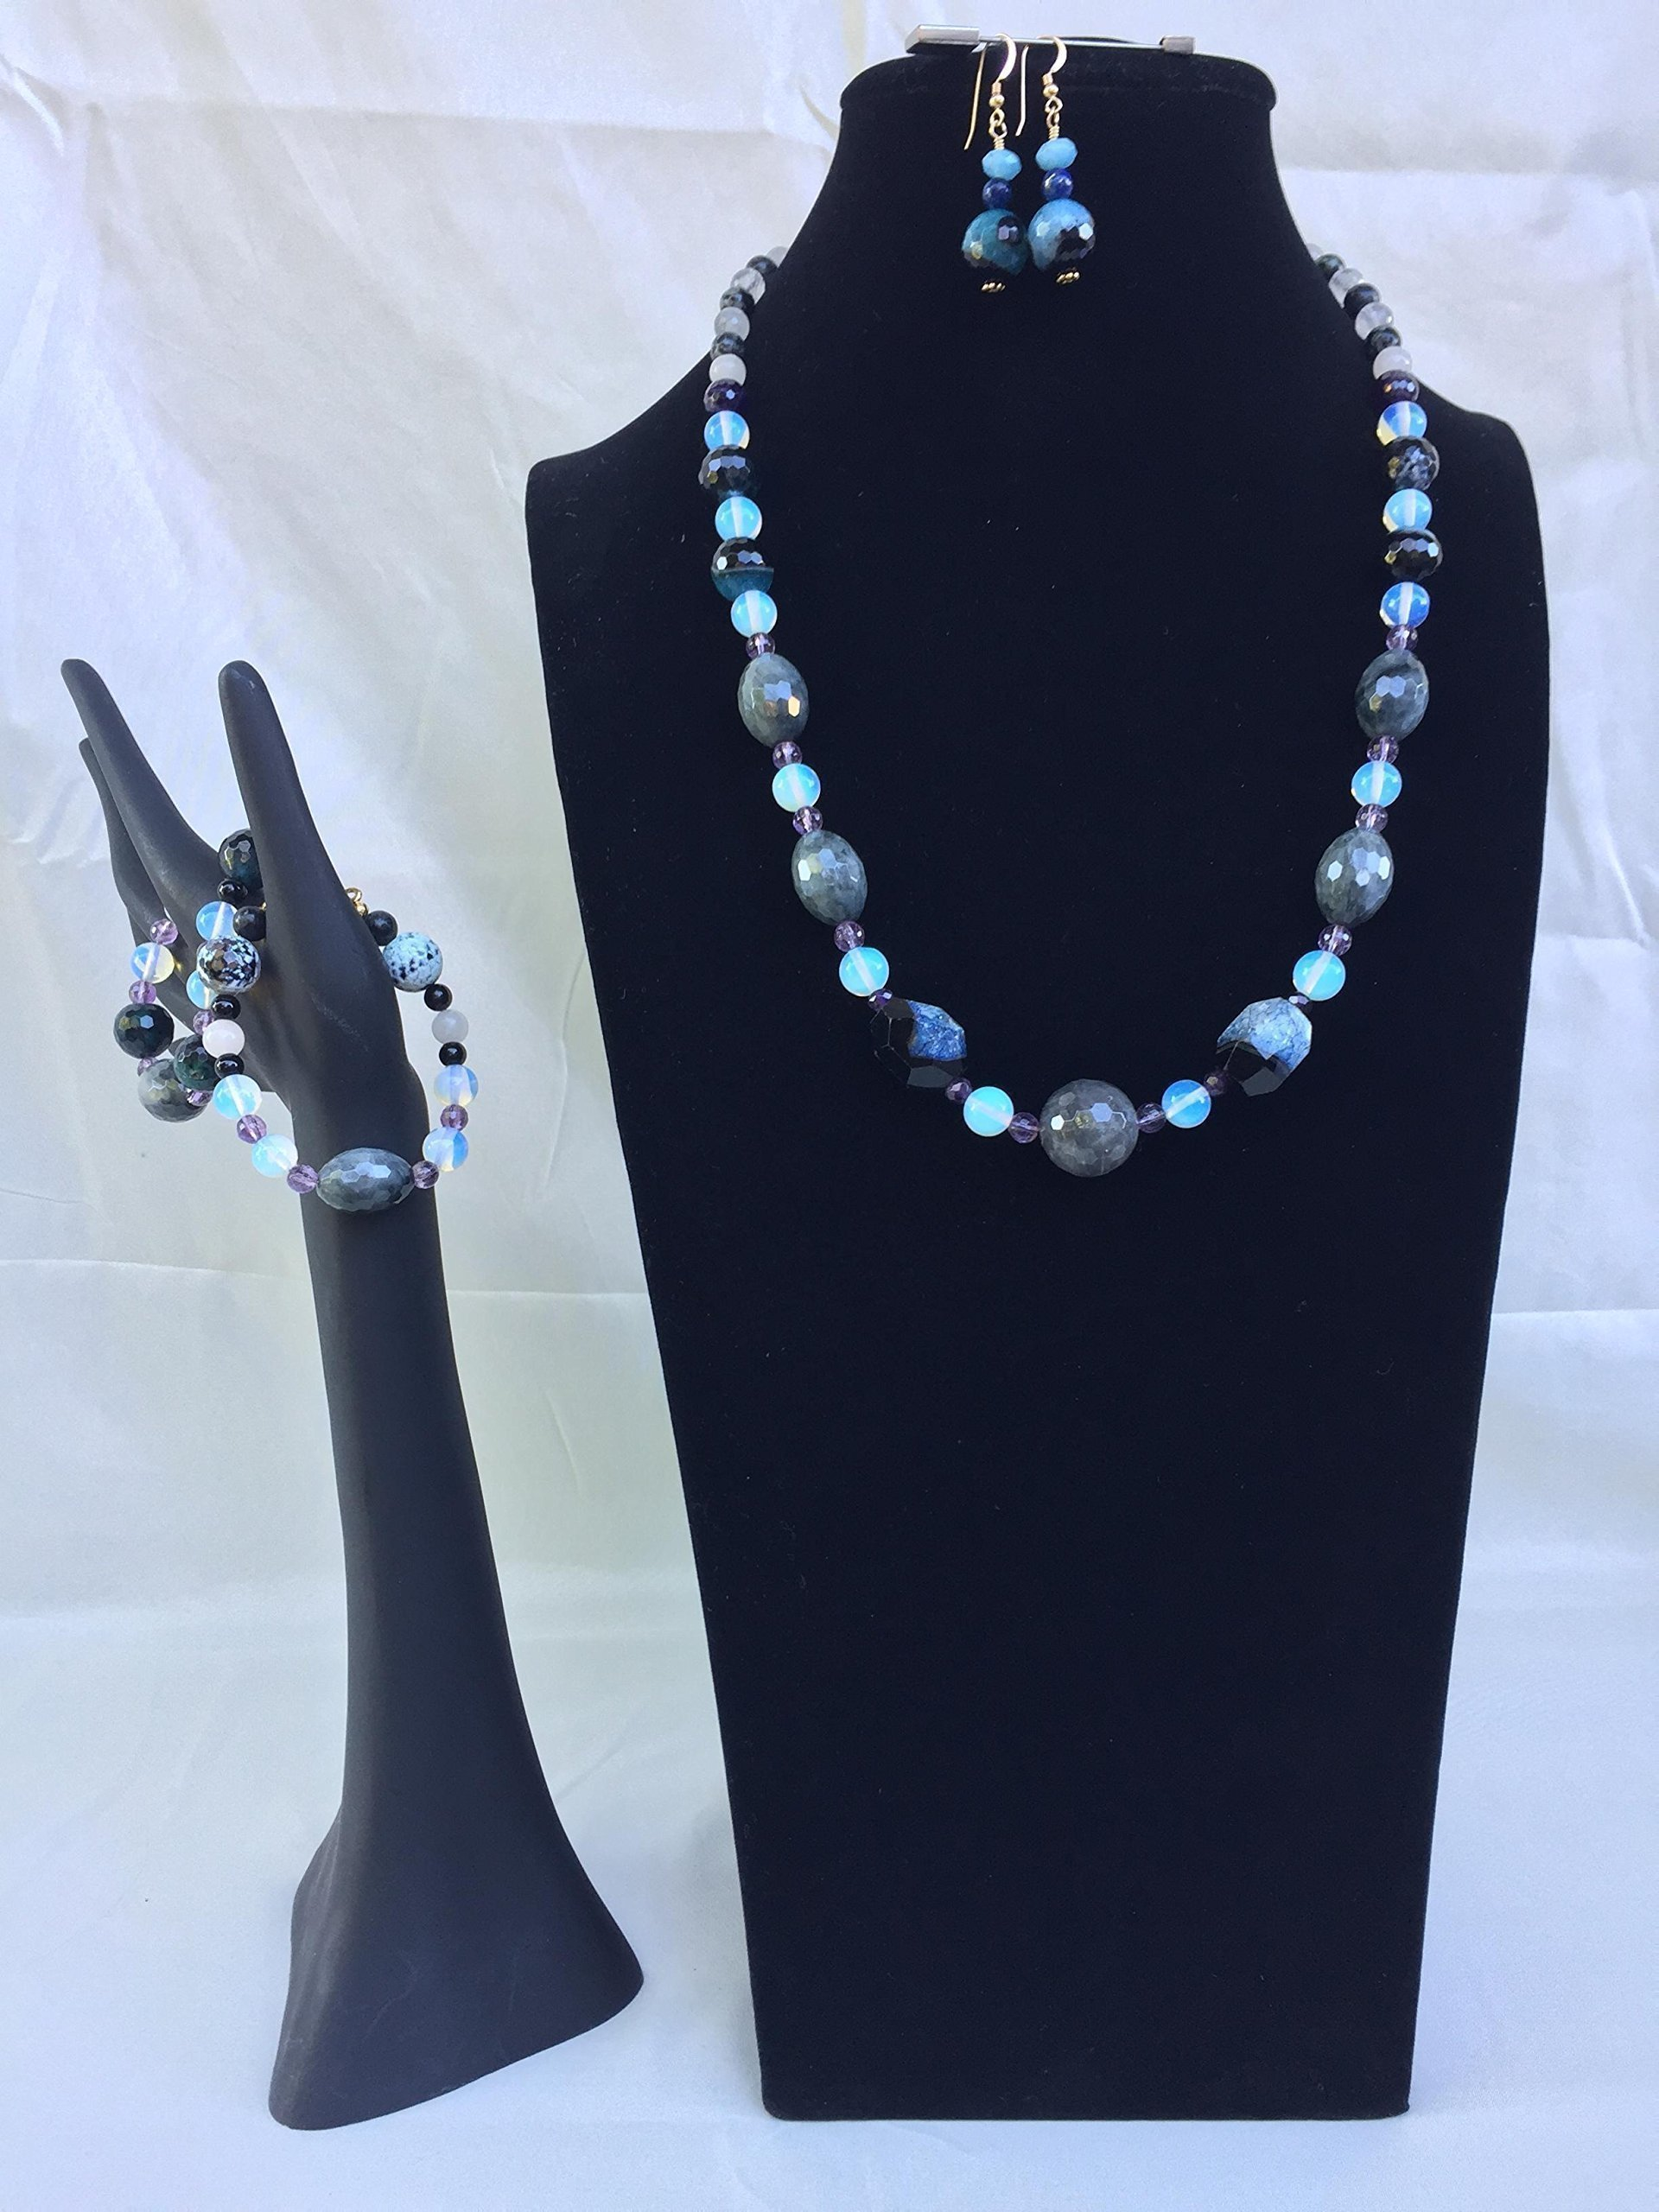 Gorgeous handmade gemstone jewelry set with a necklace, two braceles and matching dangle earrings. Mixed blue and black gemstones. One of a kind